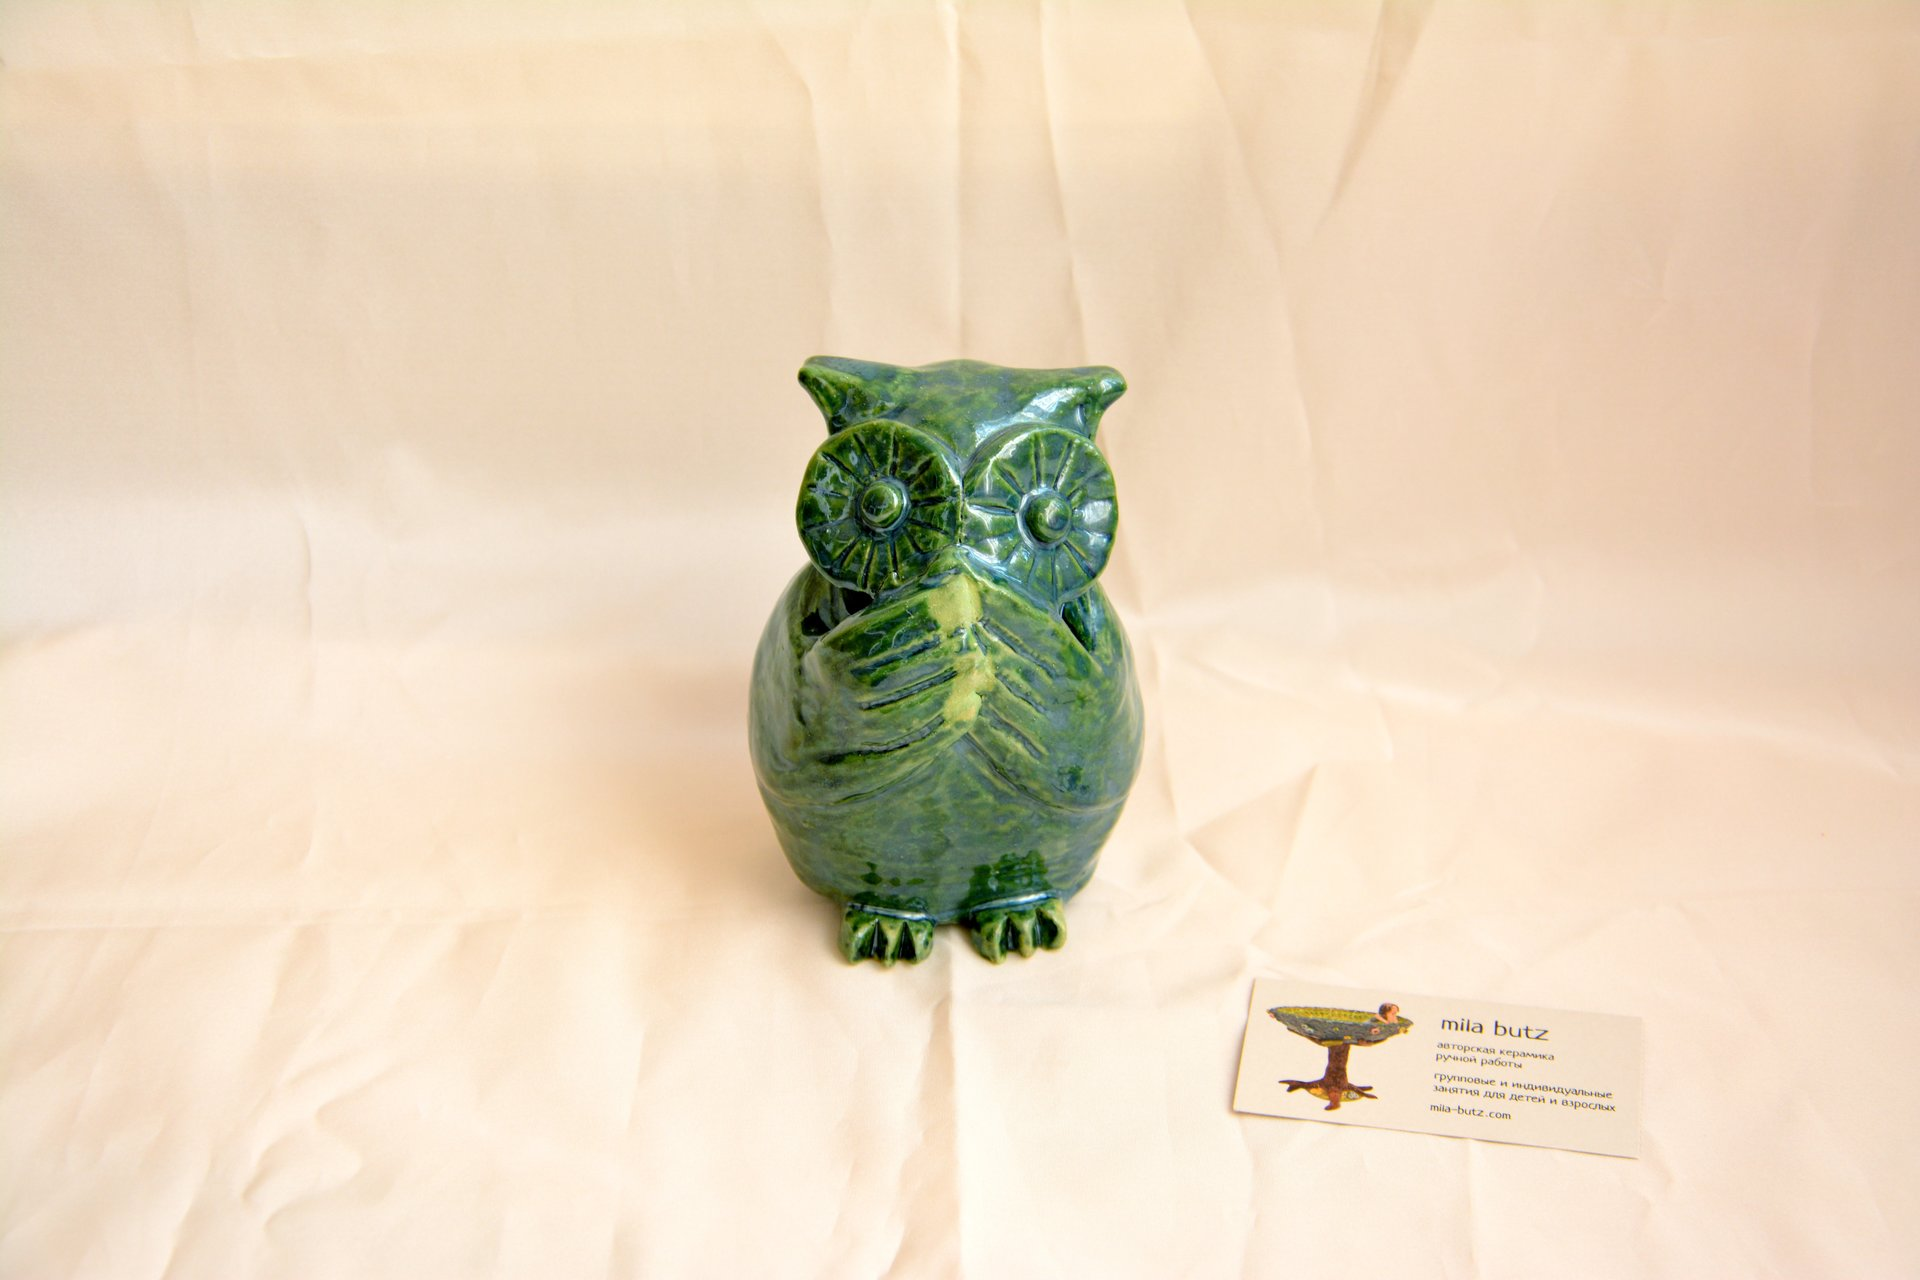 Owl «I will not say anything» - Animals and birds, height - 14cm, photo 1 of 4.